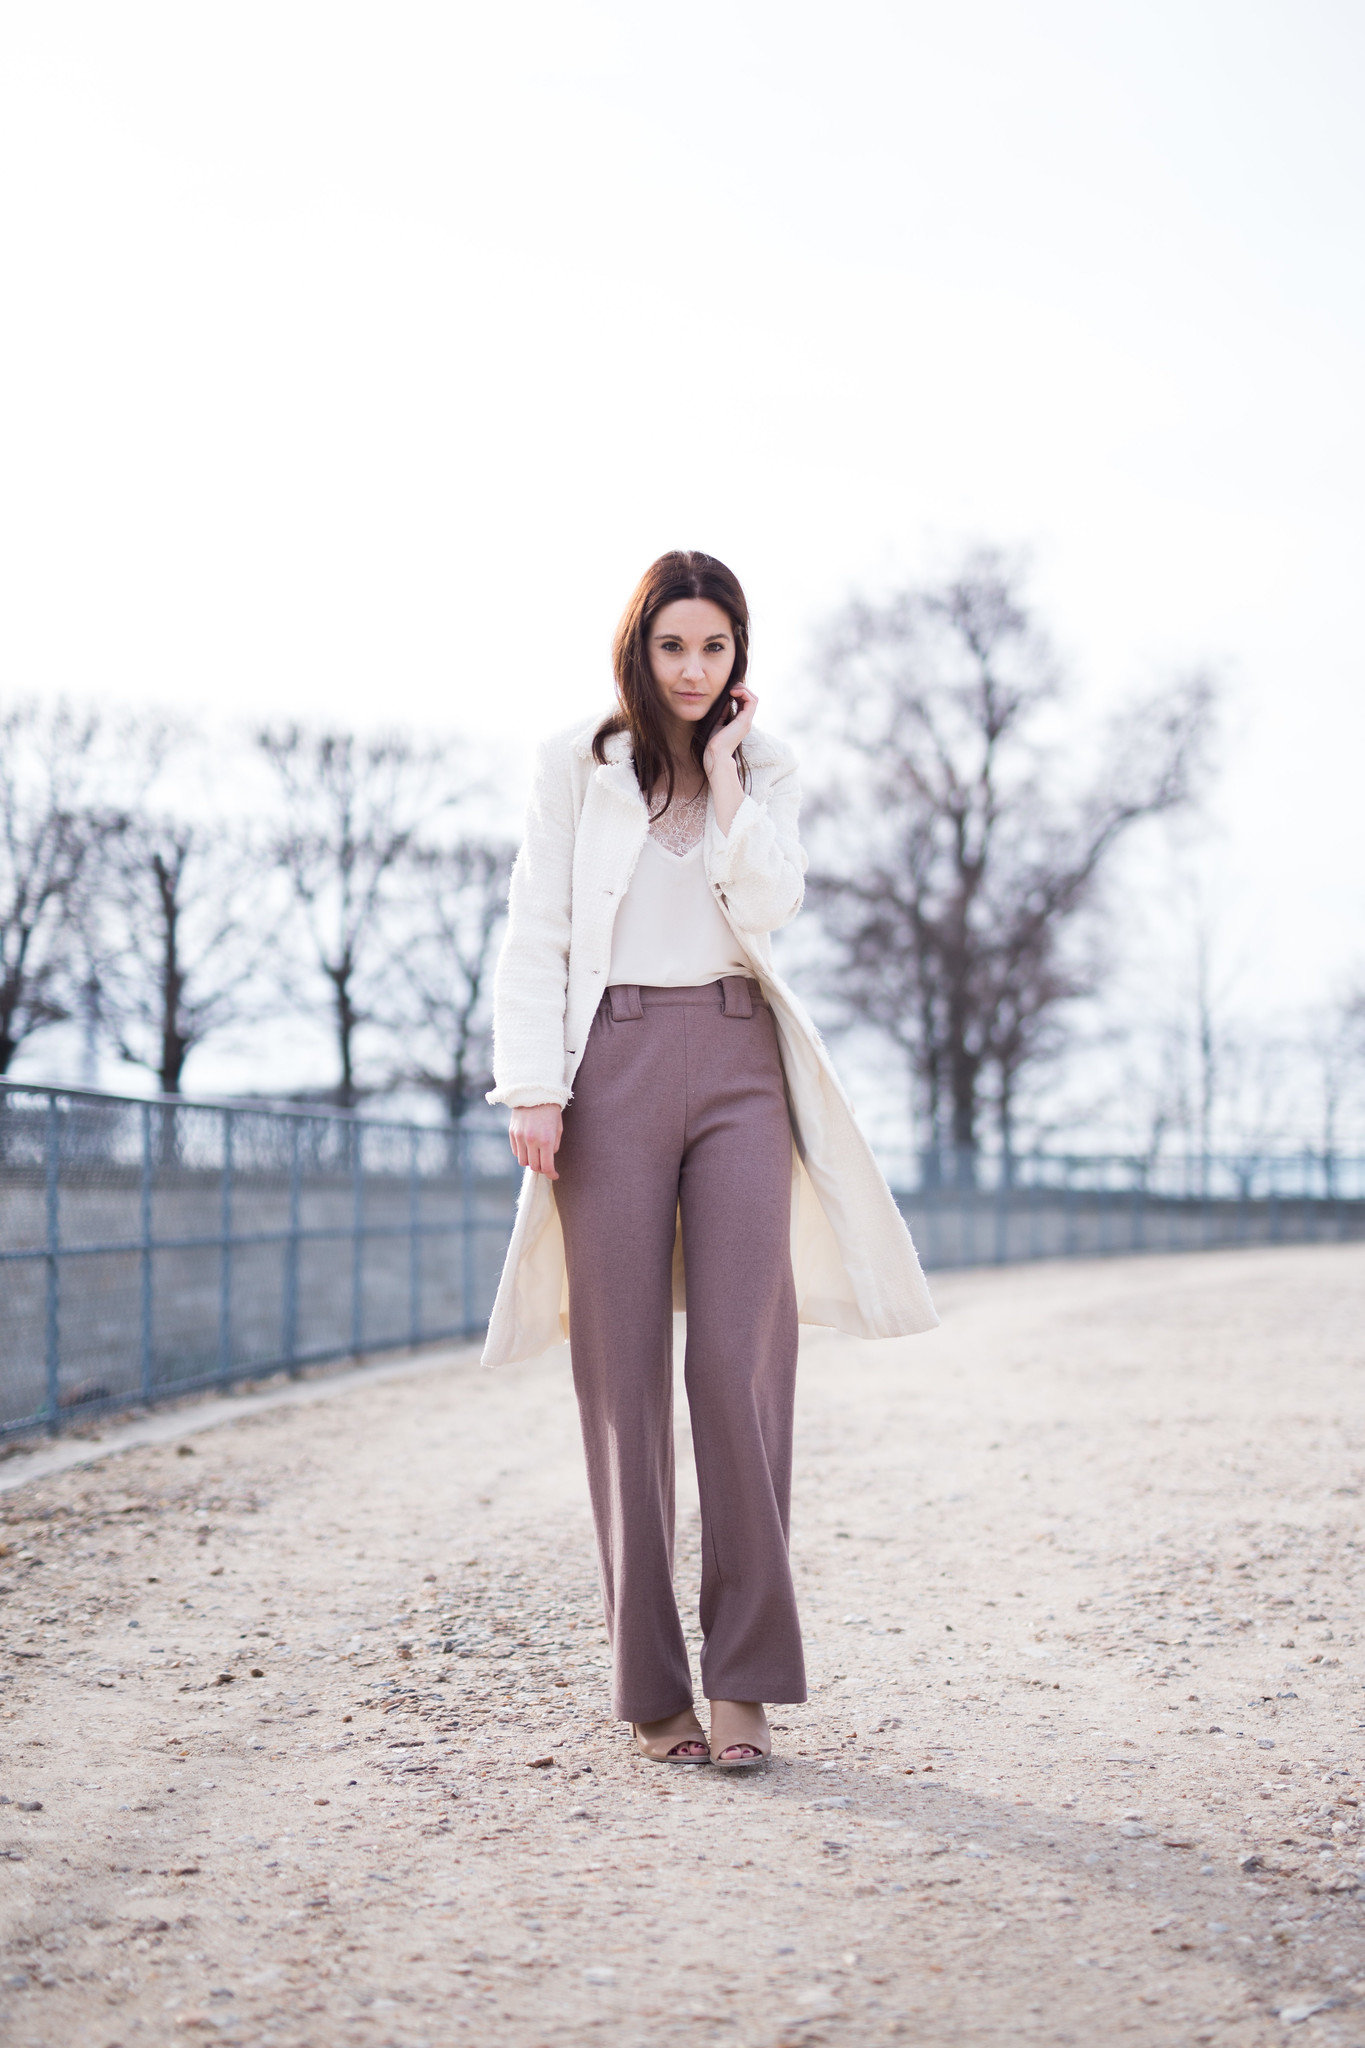 Street Style - Heidi Jean Feldman, Paris Fashion Week